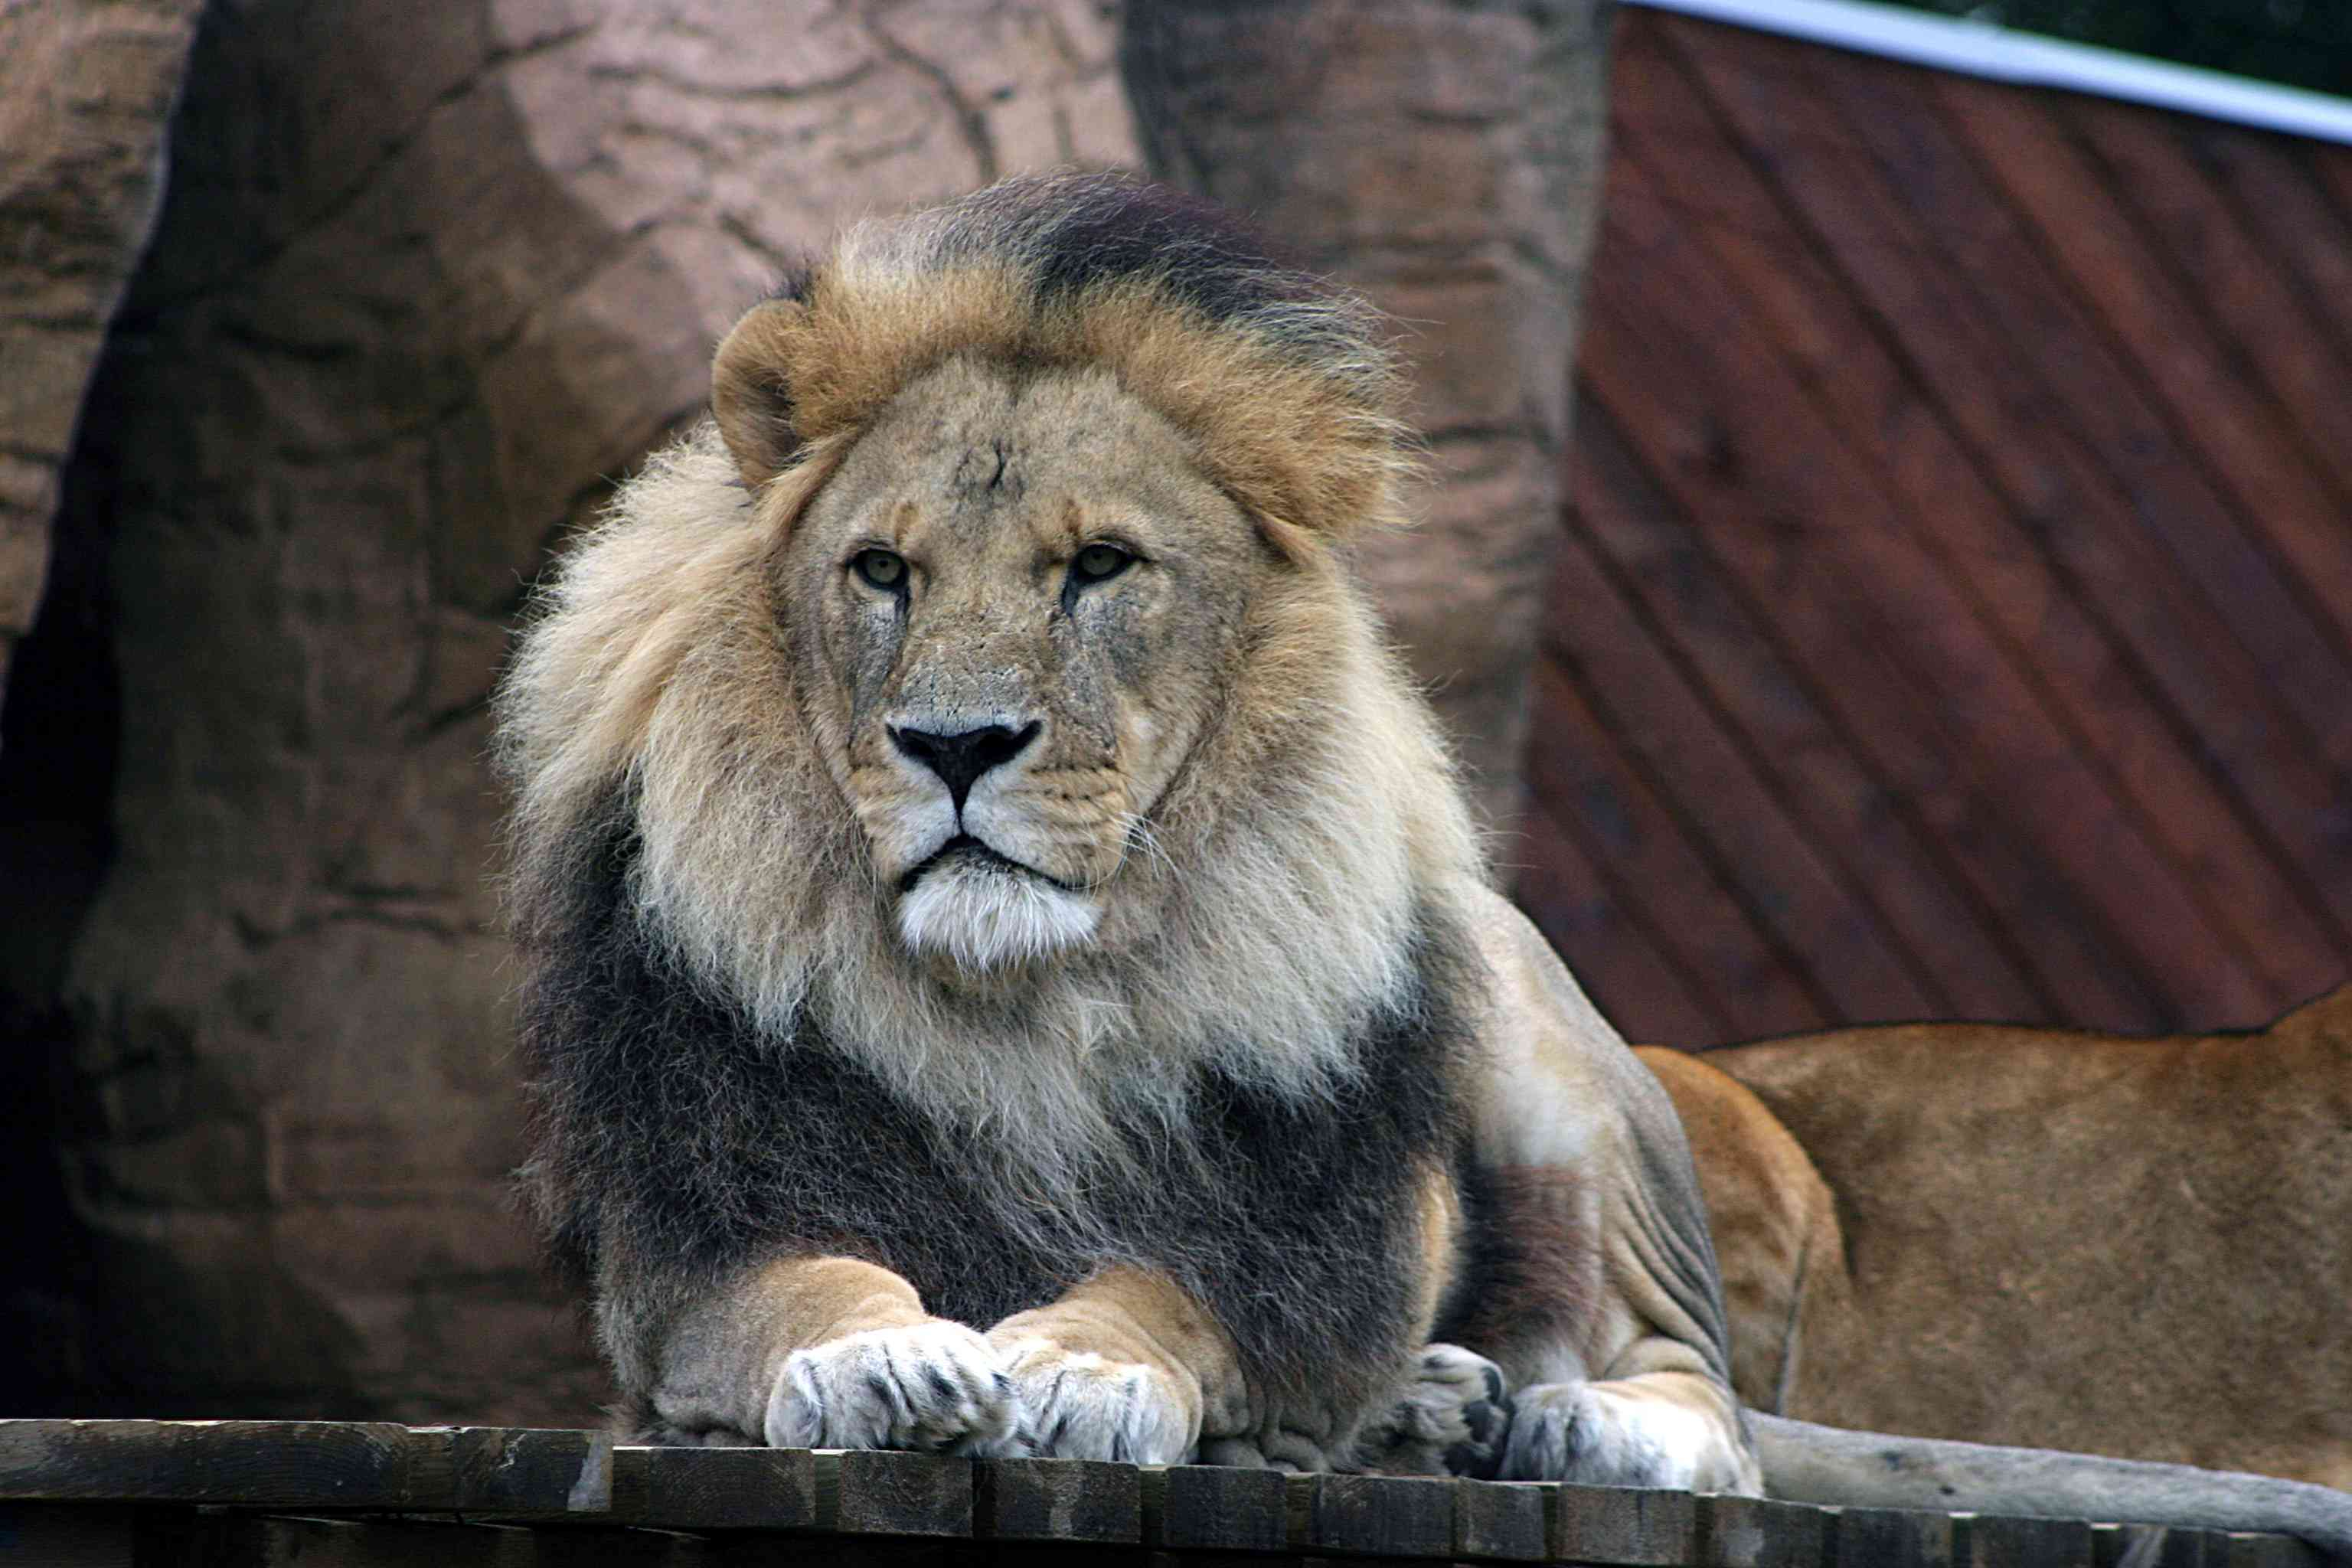 Male Lion at rest on a wooden board in Colchester Zoo